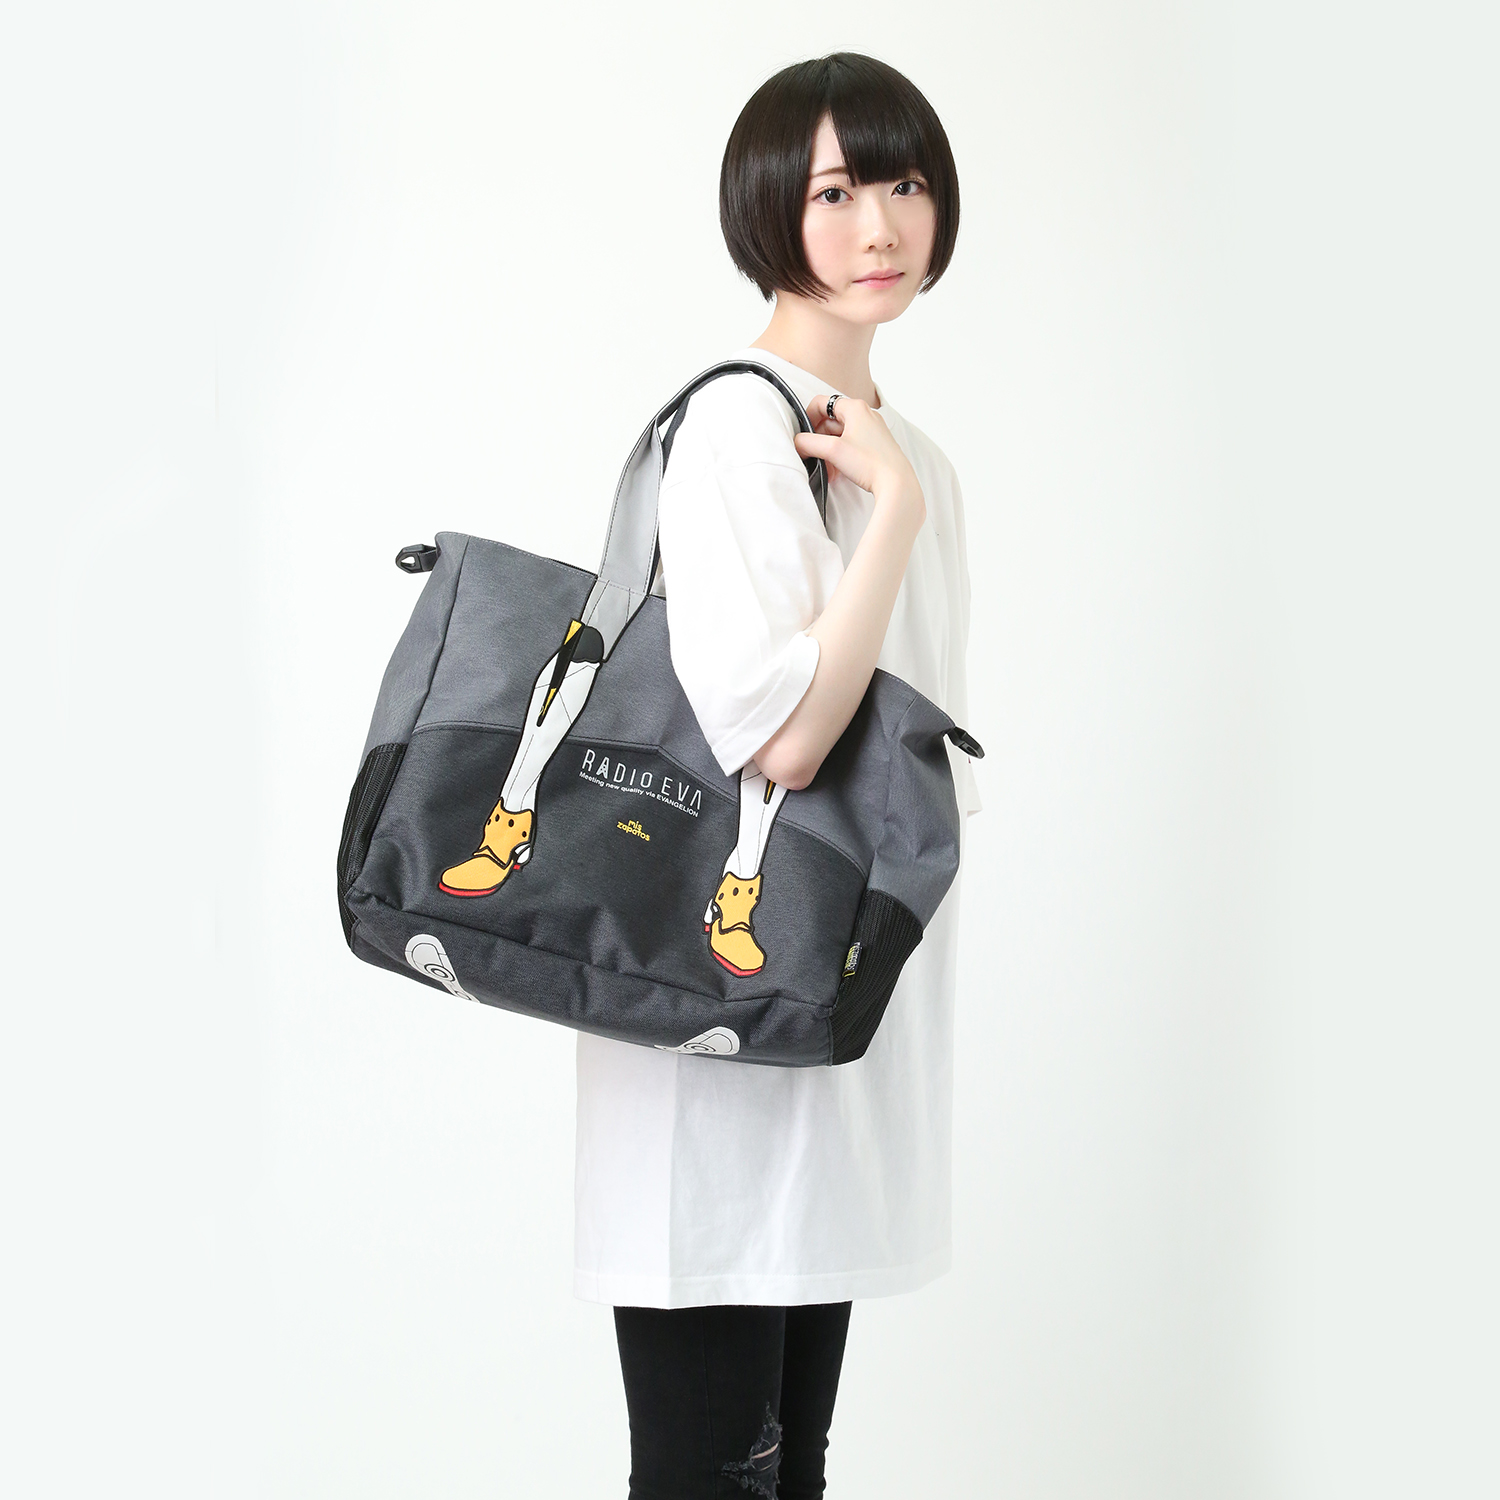 EVANGELION Bicolor 2way Tote by mis zapatos (グレー(零号機))